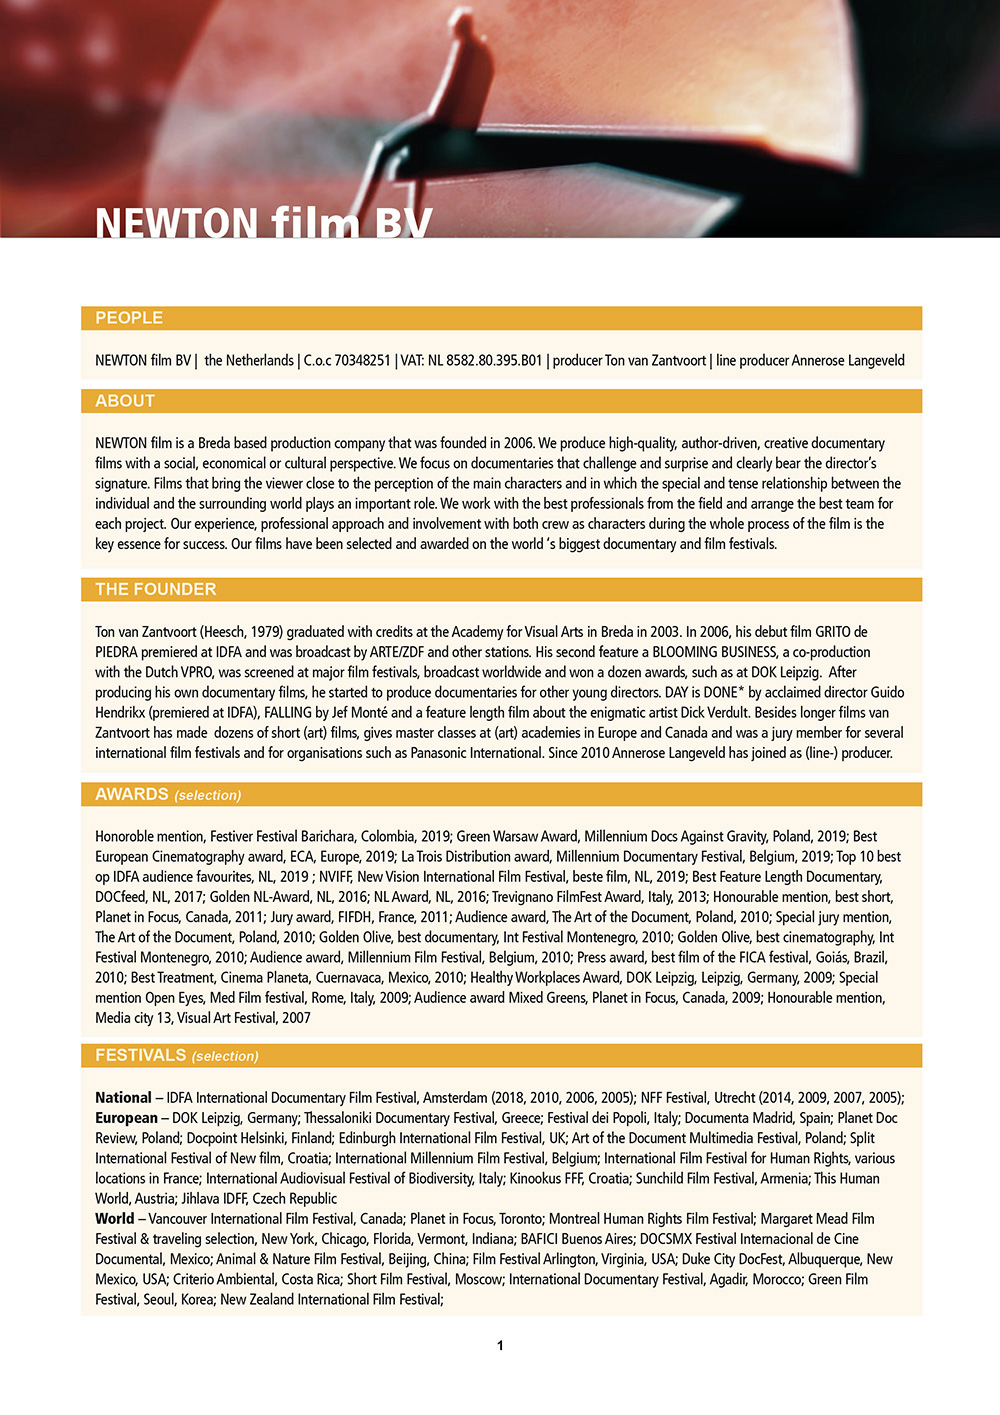 NEWTON-film-cv-page-1of5